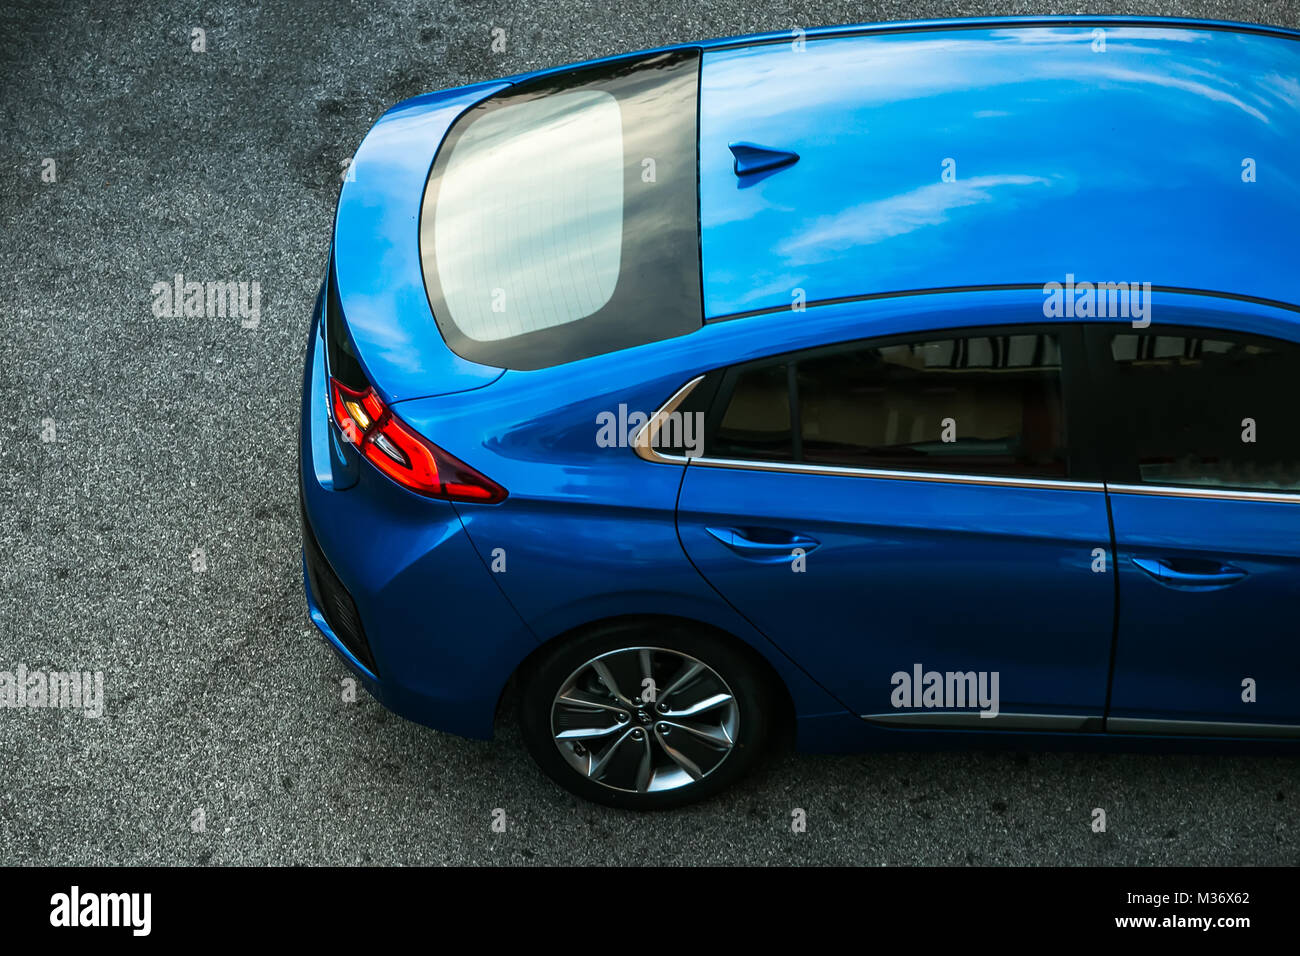 Trieste, Italy - August 2, 2017: The Hyundai Ioniq is a Compact five-door hatchback manufactured and marketed by Stock Photo